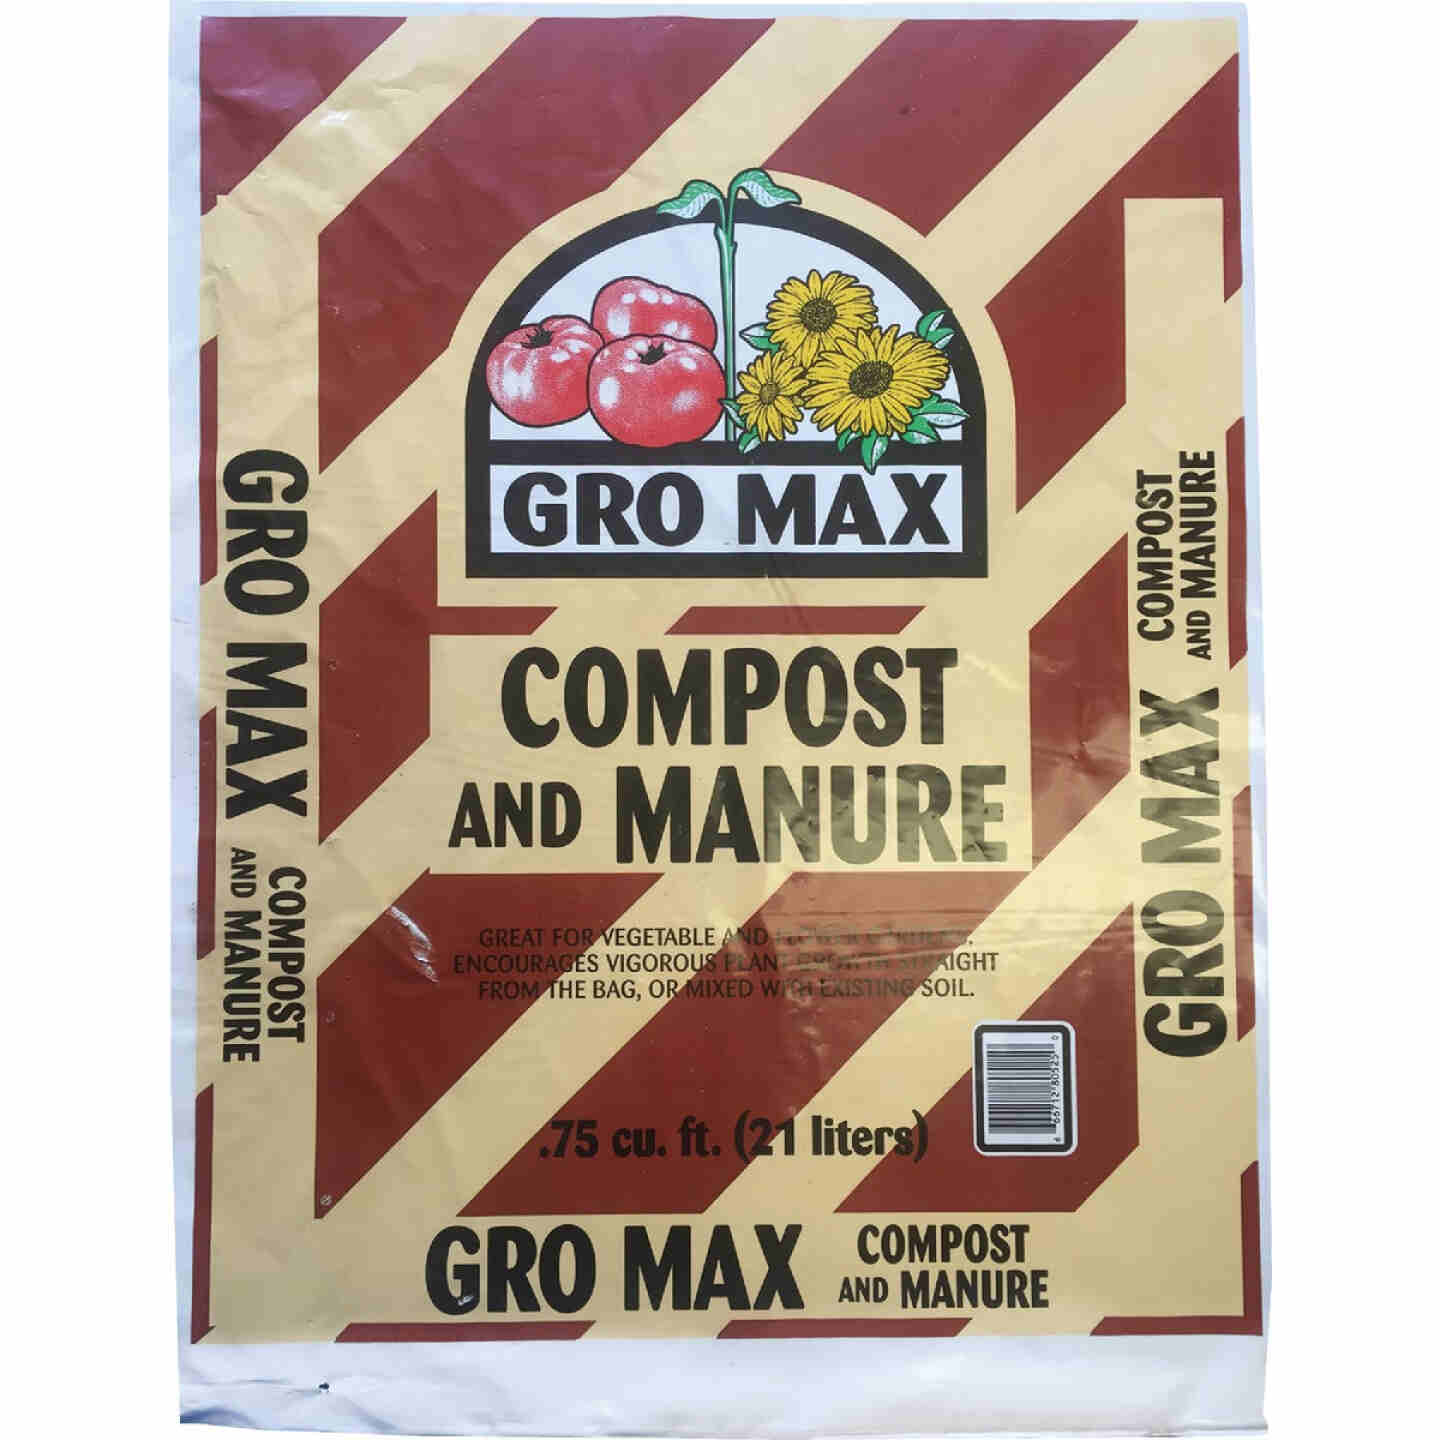 Gro Max 40 Lb. 3/4 Cu. Ft. Composted Cow Manure Image 1